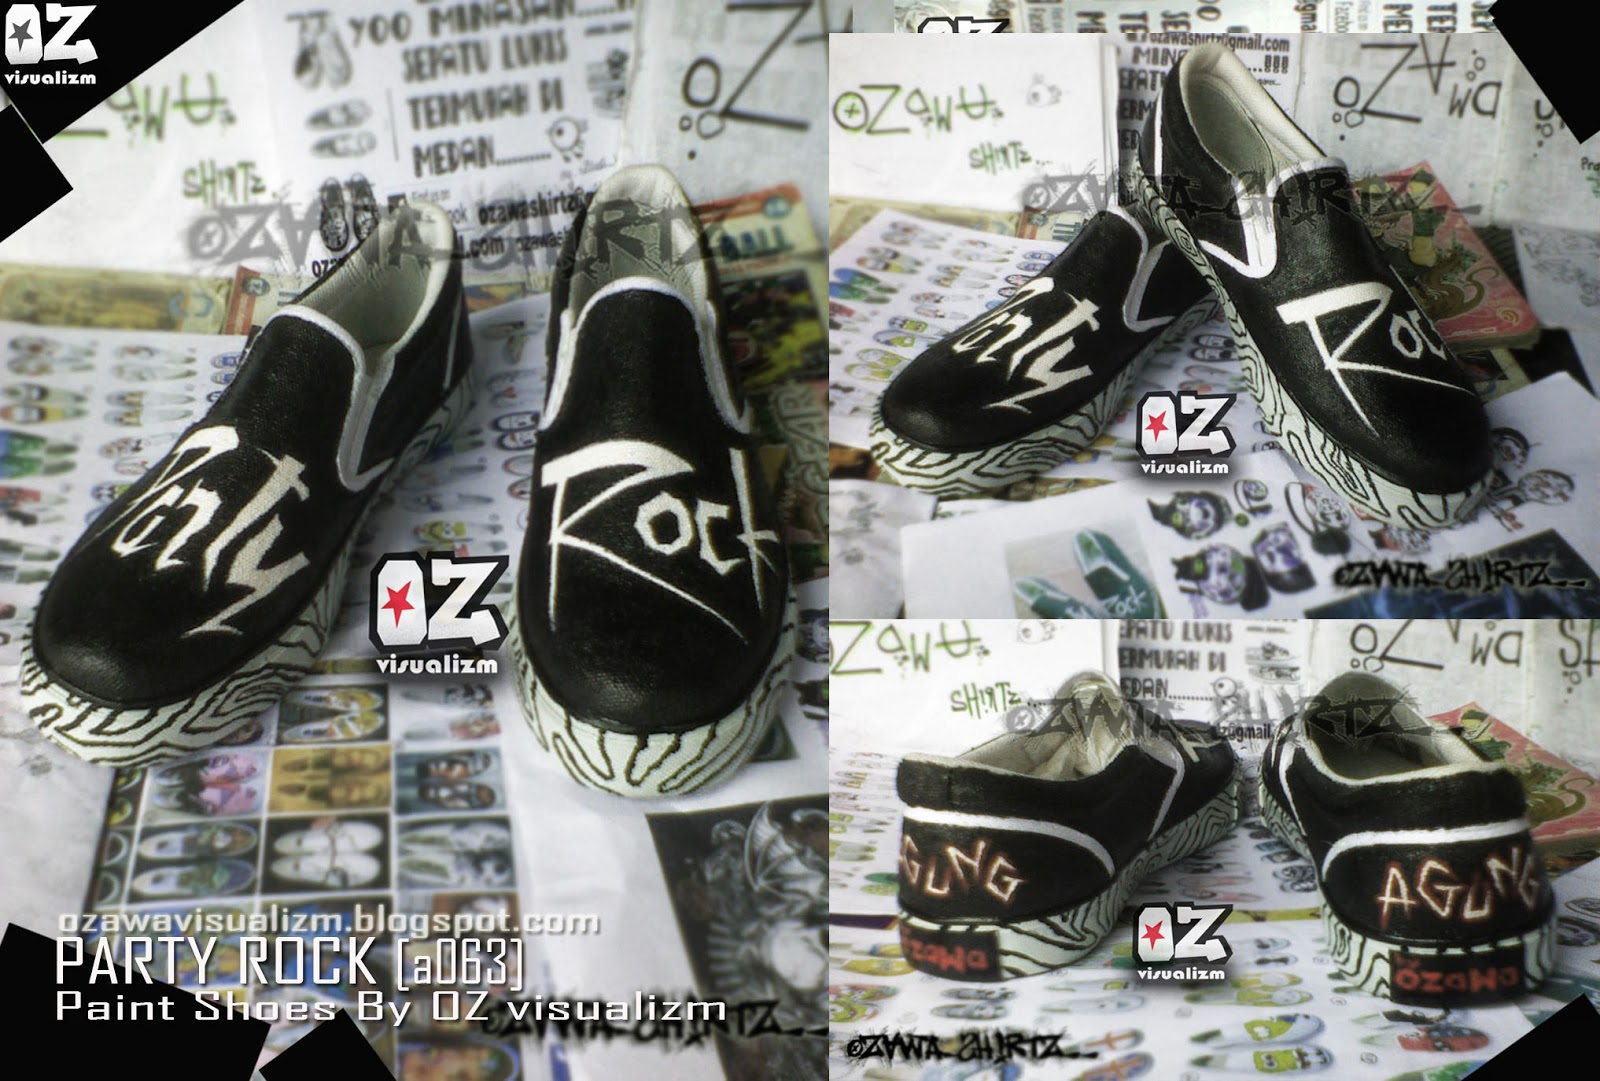 Ozawa Visualizm online shopz  SEPATU LUKIS PARTY ROCK 2e333d2706